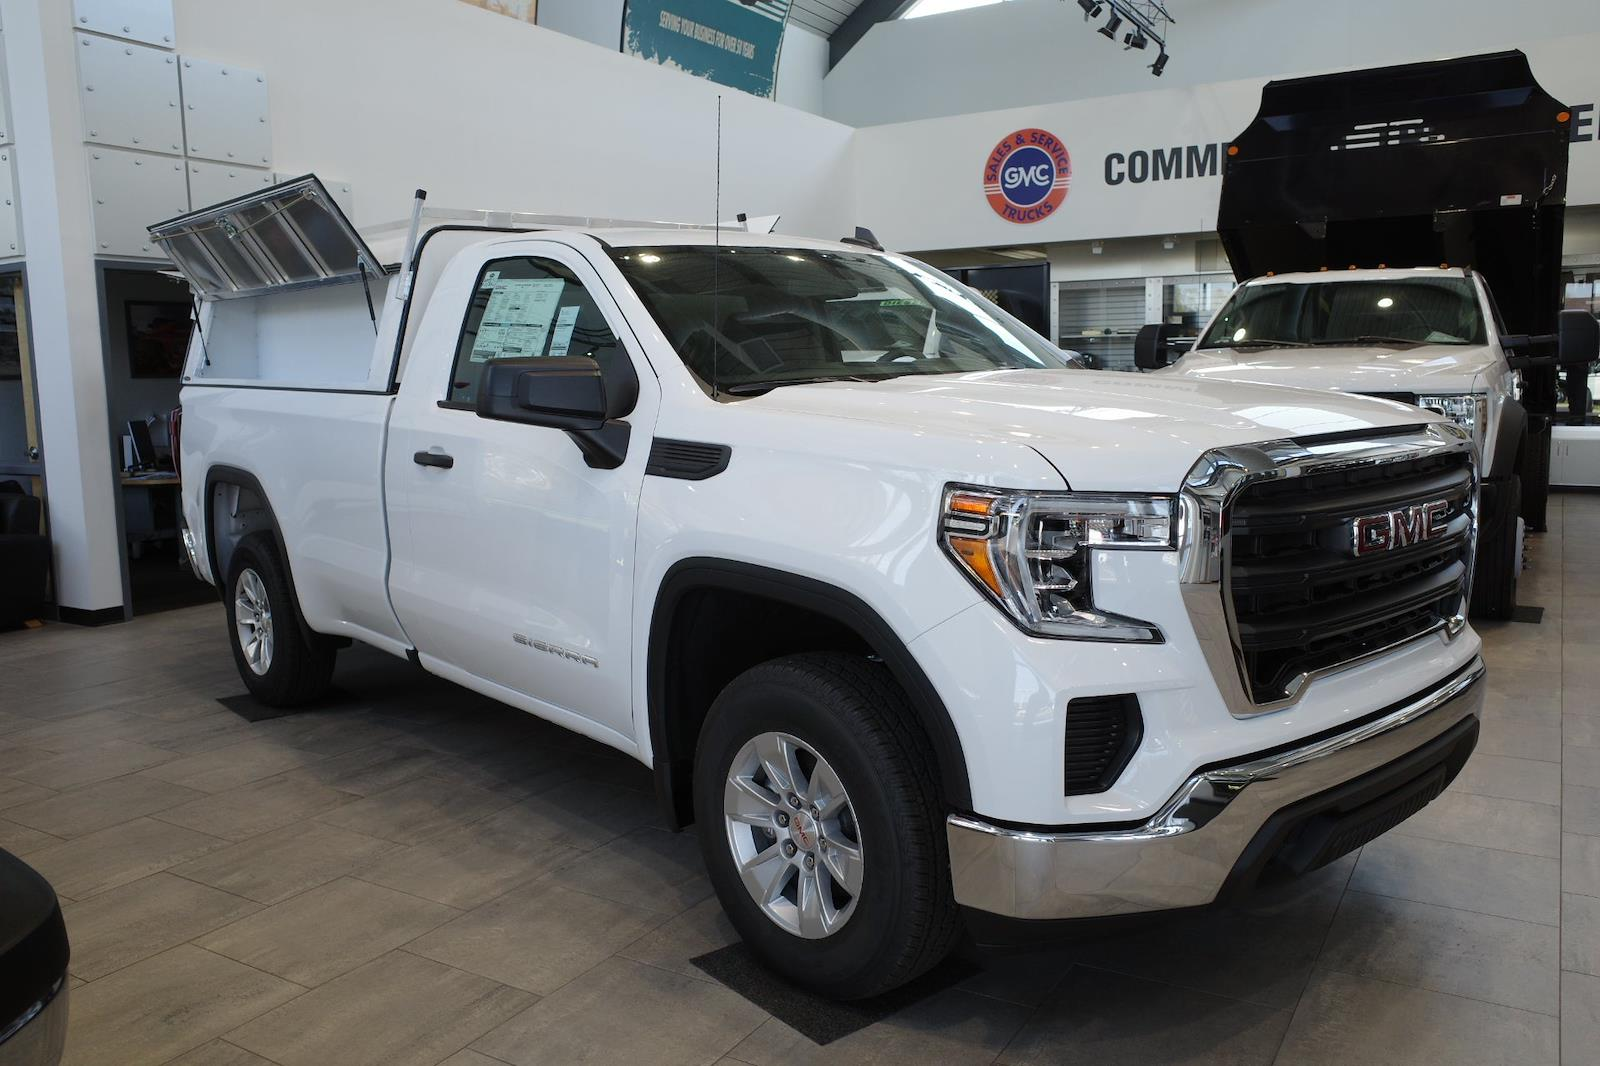 2021 GMC Sierra 1500 Regular Cab 4x2, Pickup #MT421 - photo 1